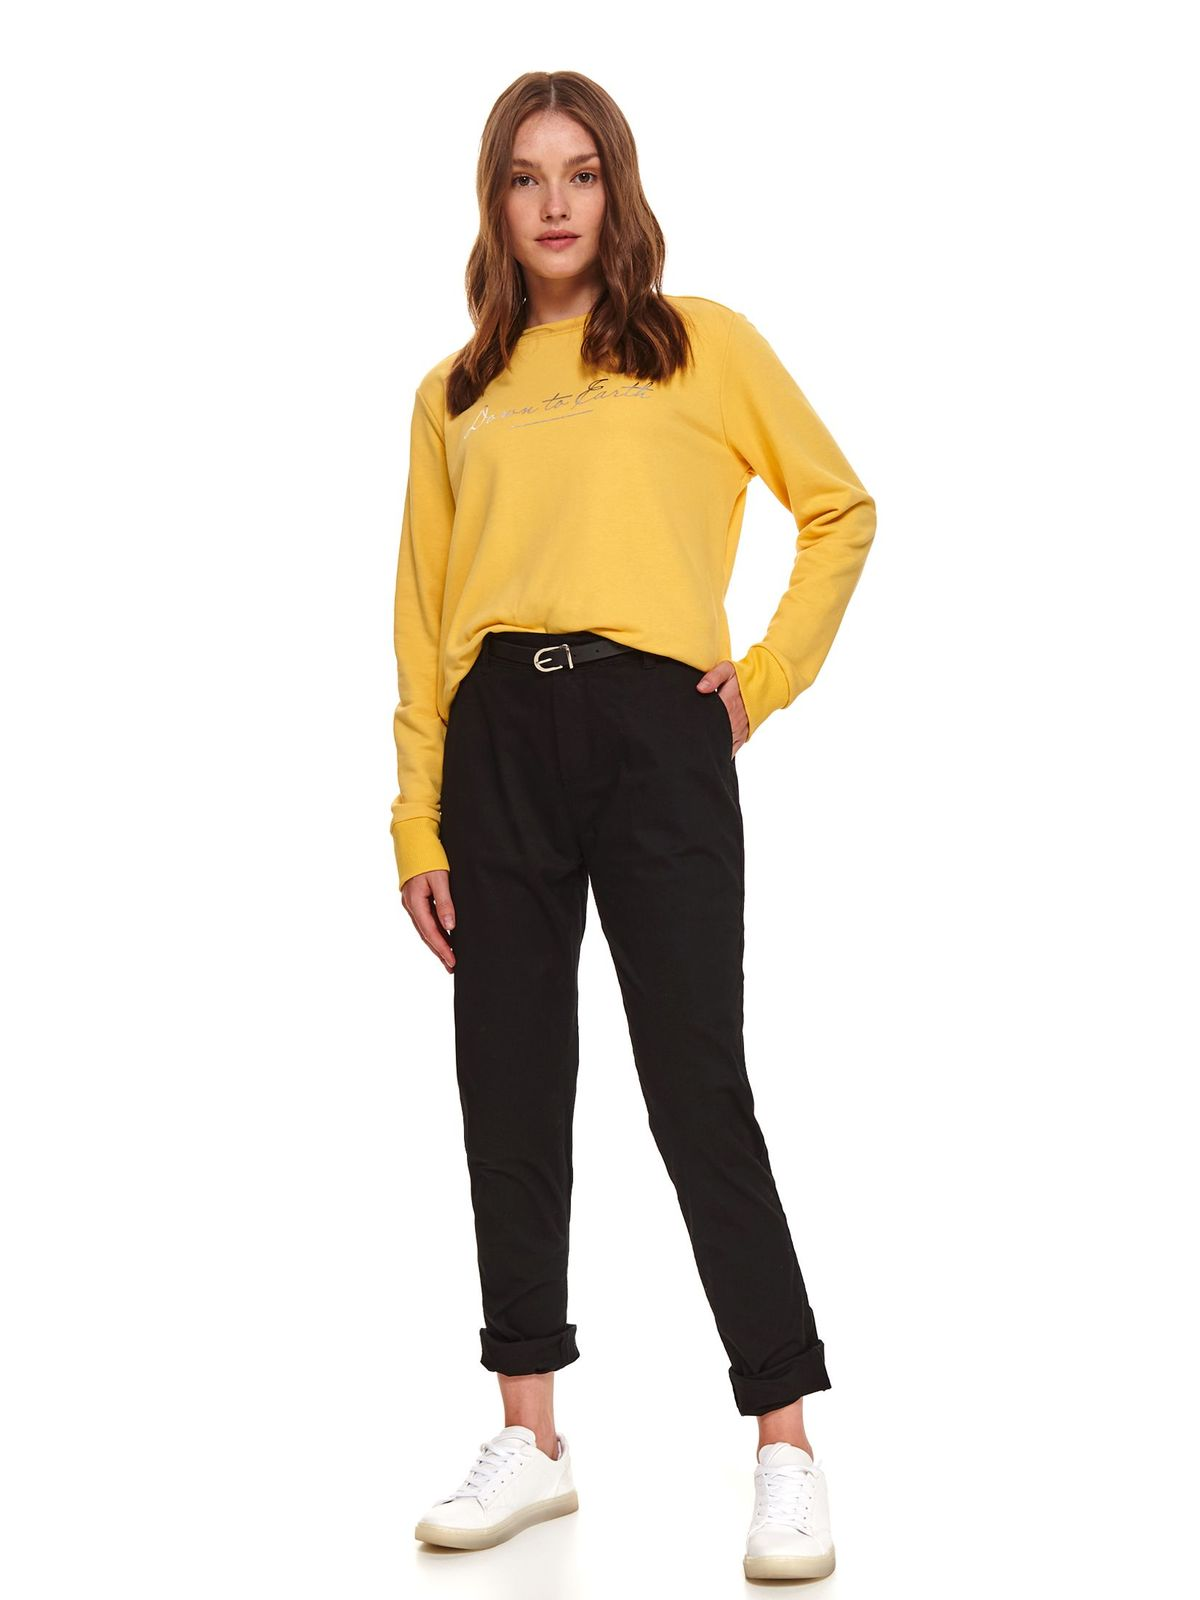 Black trousers casual denim with pockets faux leather belt